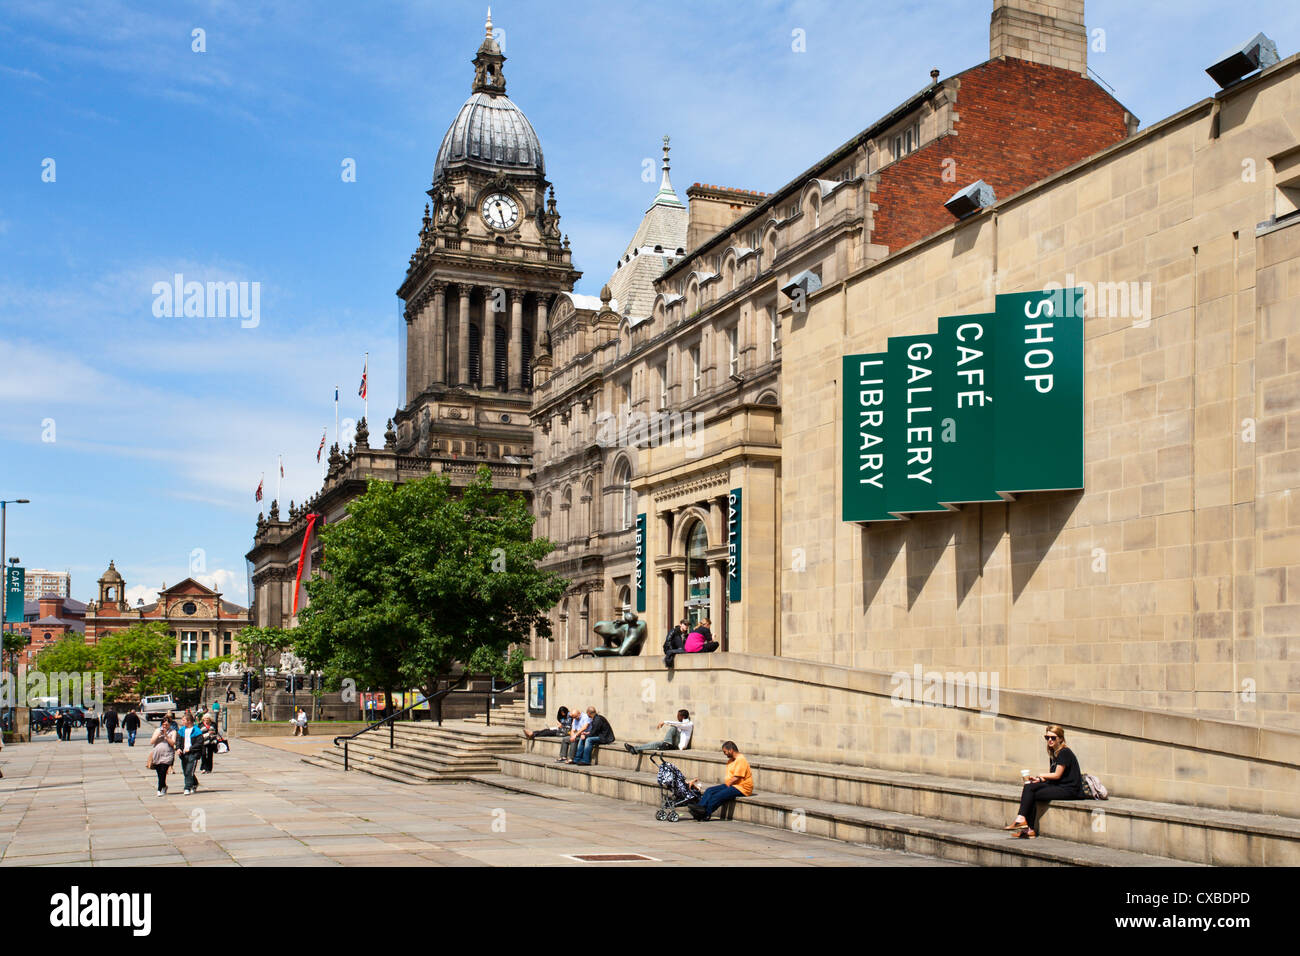 Leeds Library and Town Hall on The Headrow, Leeds, West Yorkshire, Yorkshire, England, United Kingdom, Europe - Stock Image